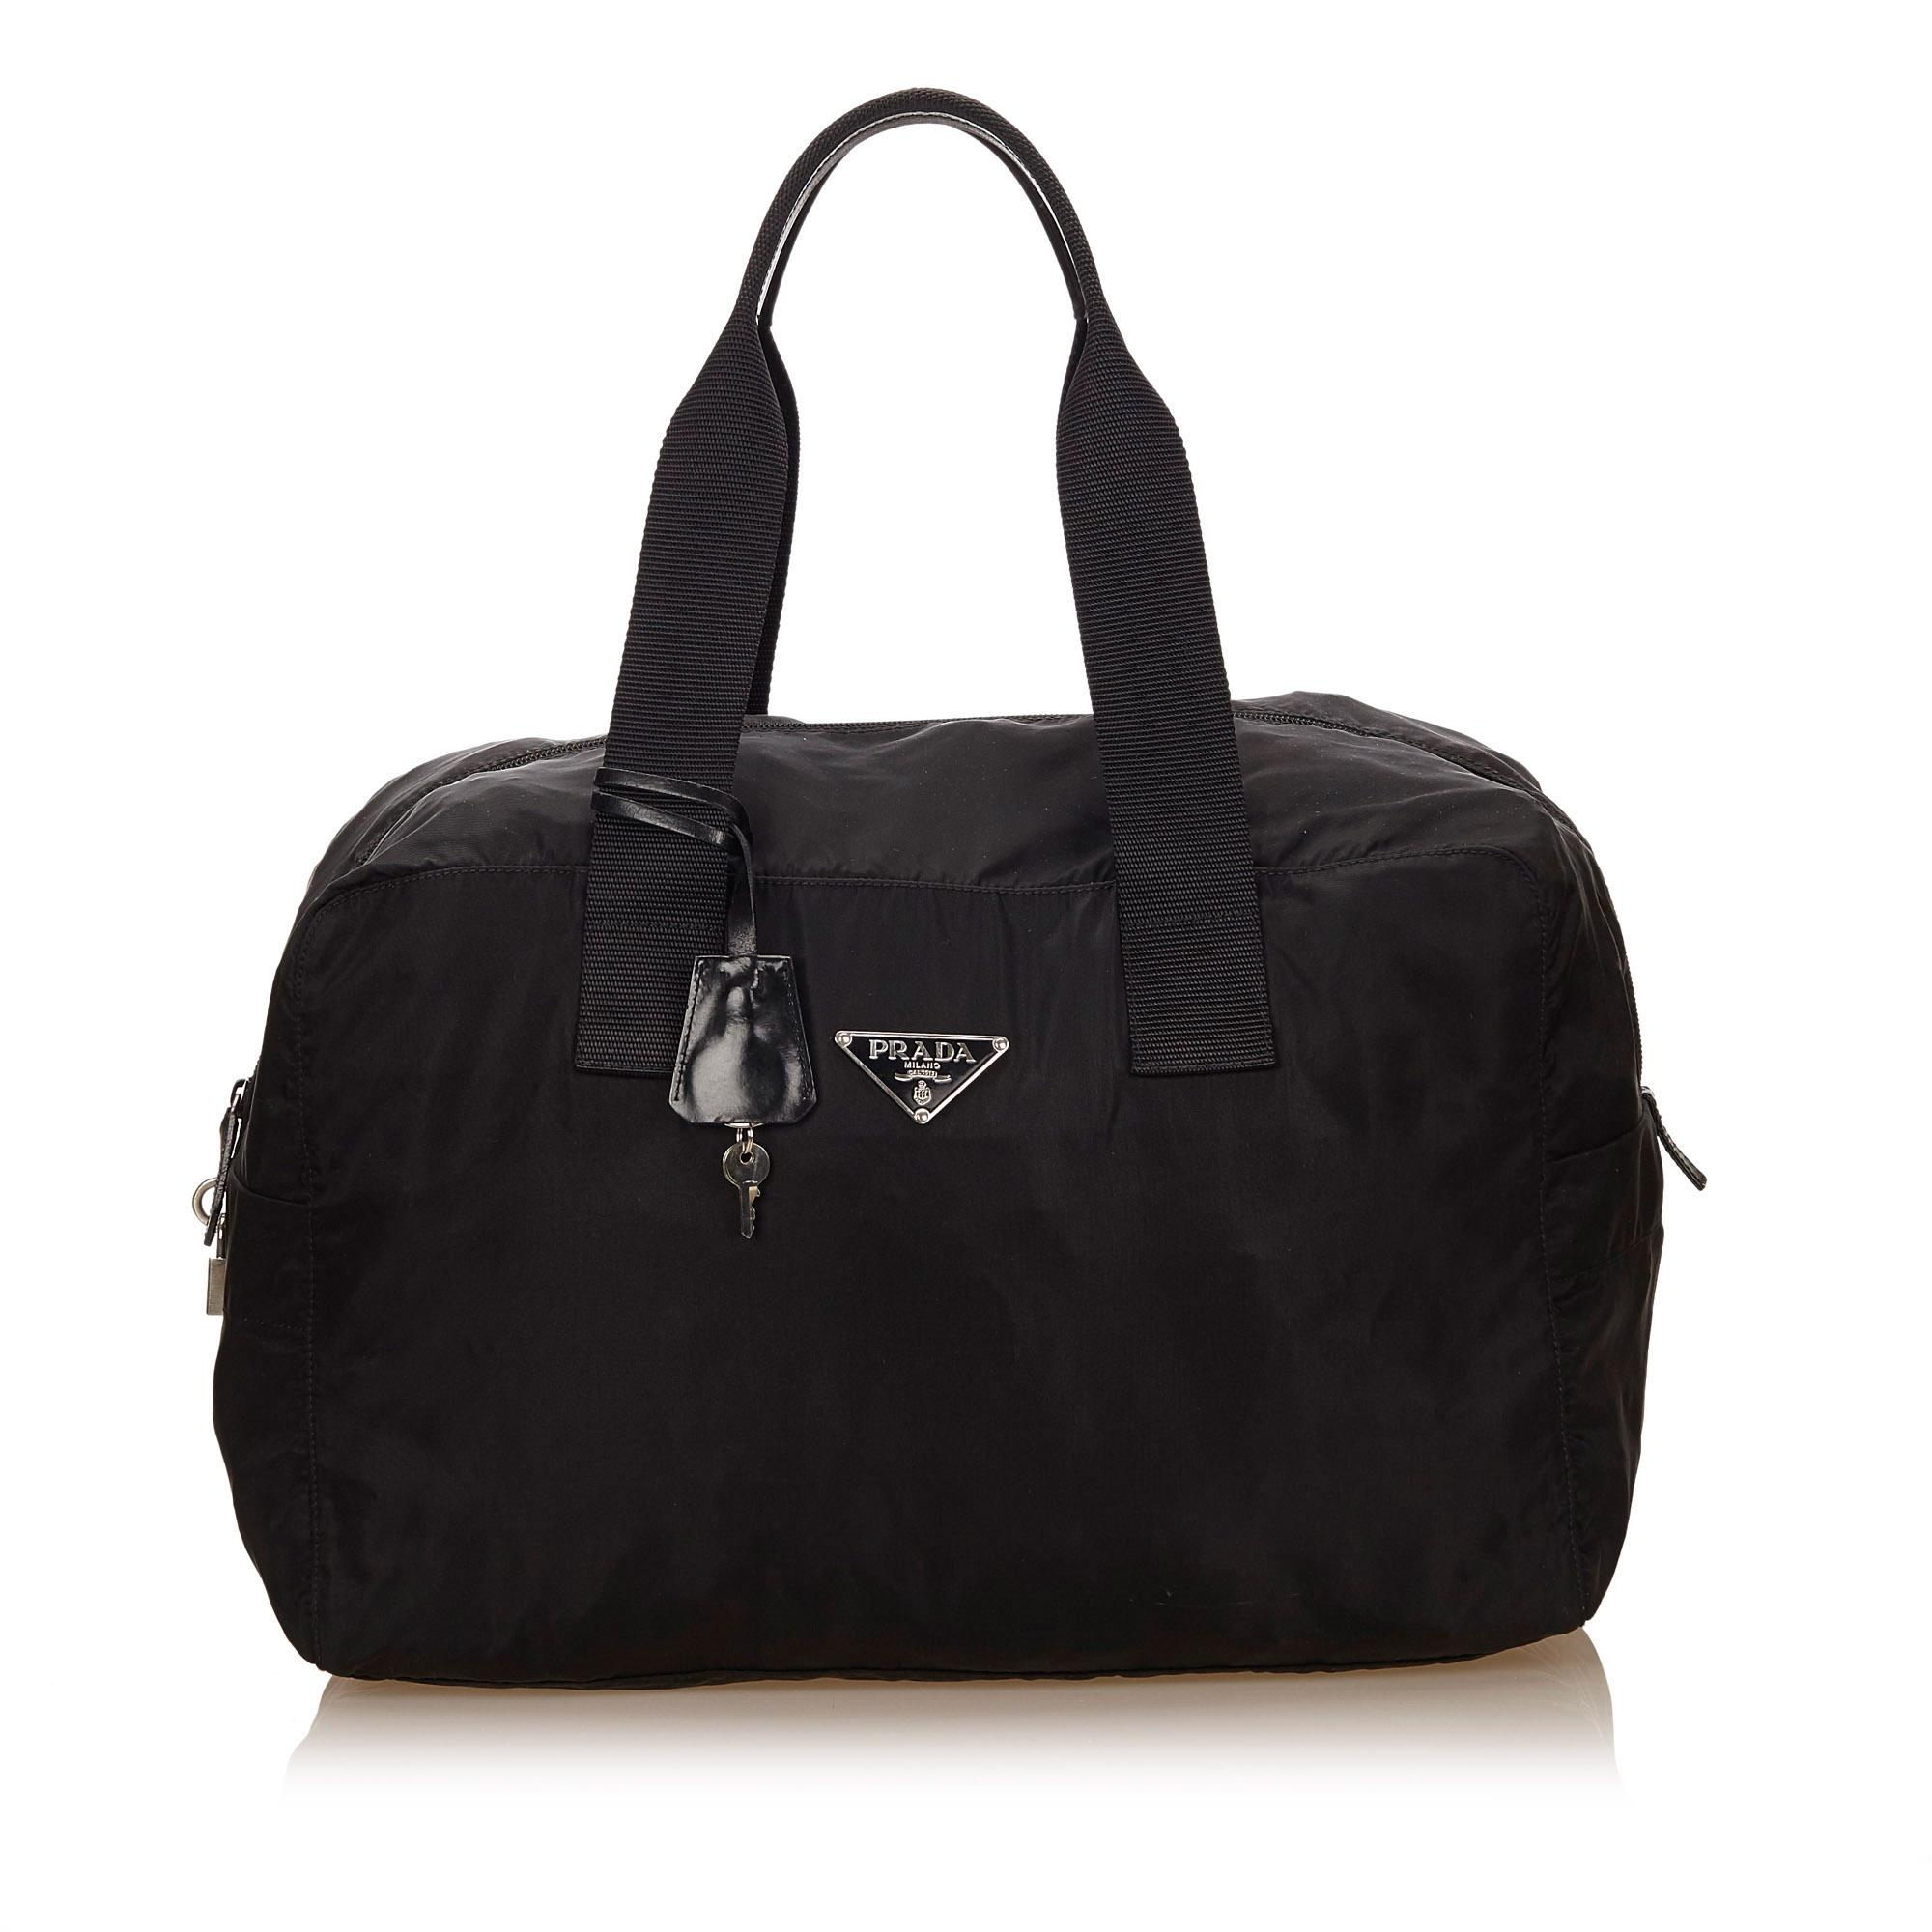 Prada Weekend, Travel & Duffle Bags - Up to 70% off at Tradesy